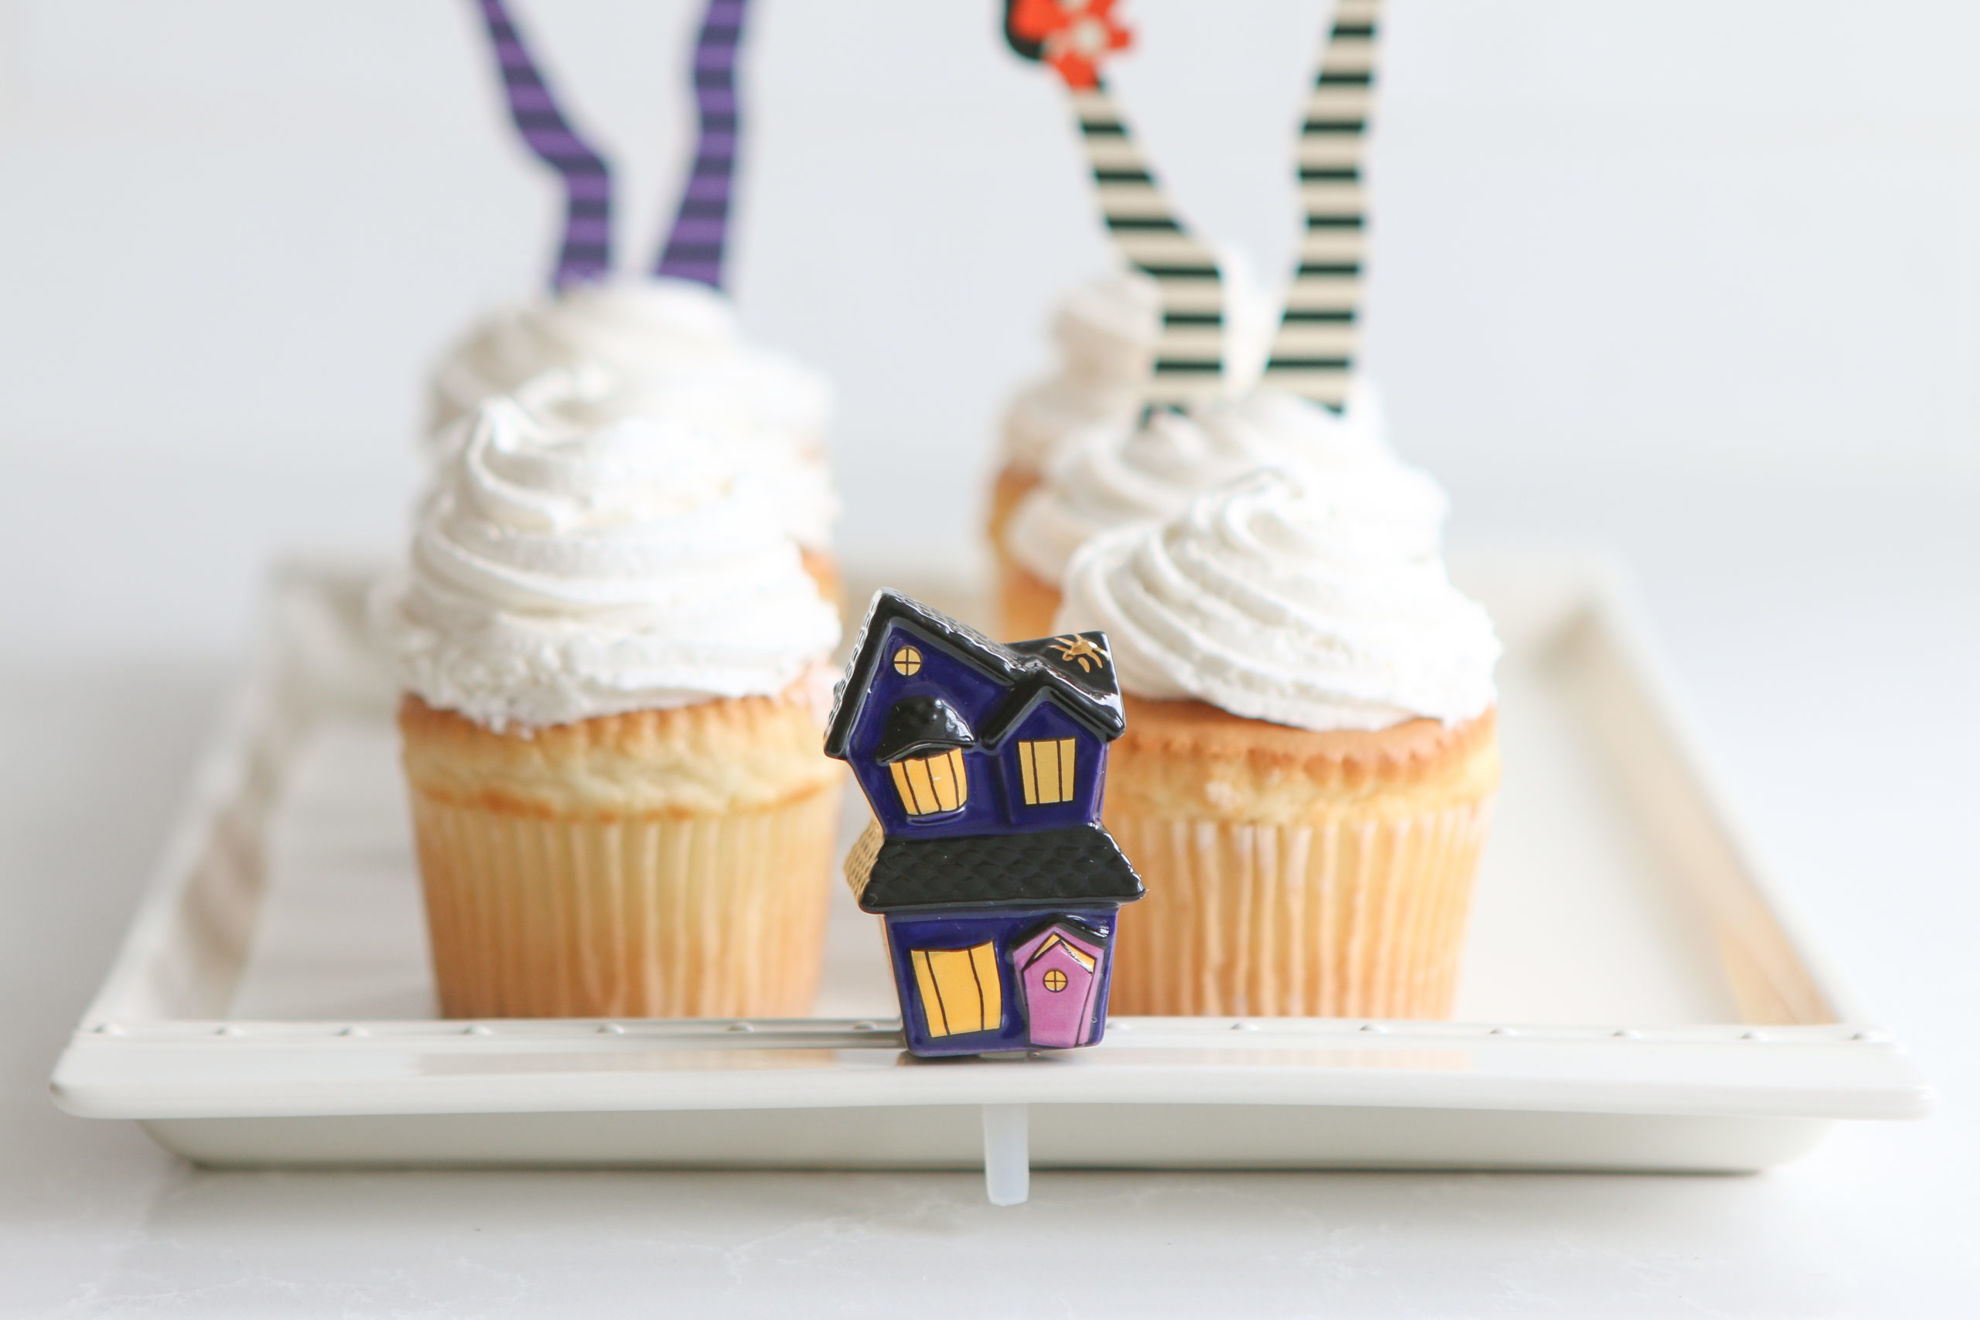 Spooky Spaces (Haunted House) Mini by Nora Fleming